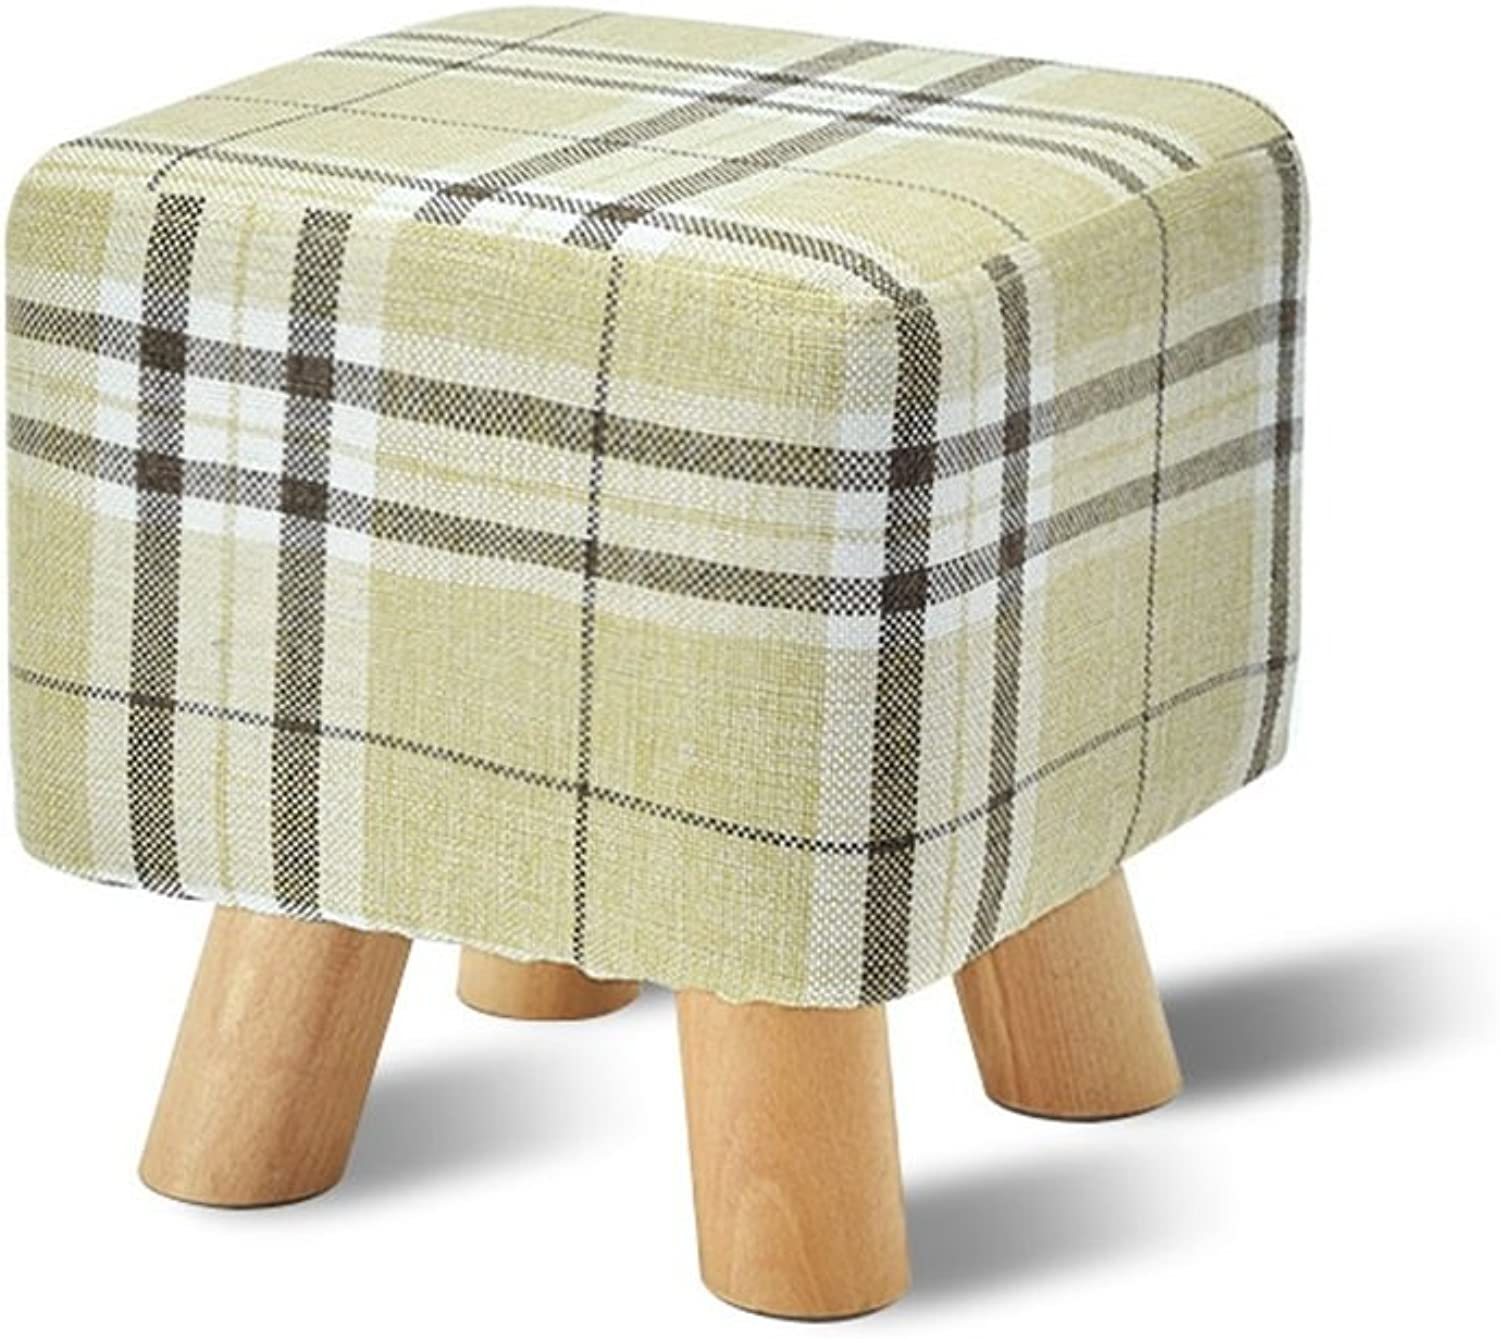 Upholstered Footstool Solid Wood Change shoes Stool Upholstered Footstool Footrest Small Seat Foot Rest Chair Brown Multifunction use (color    6)